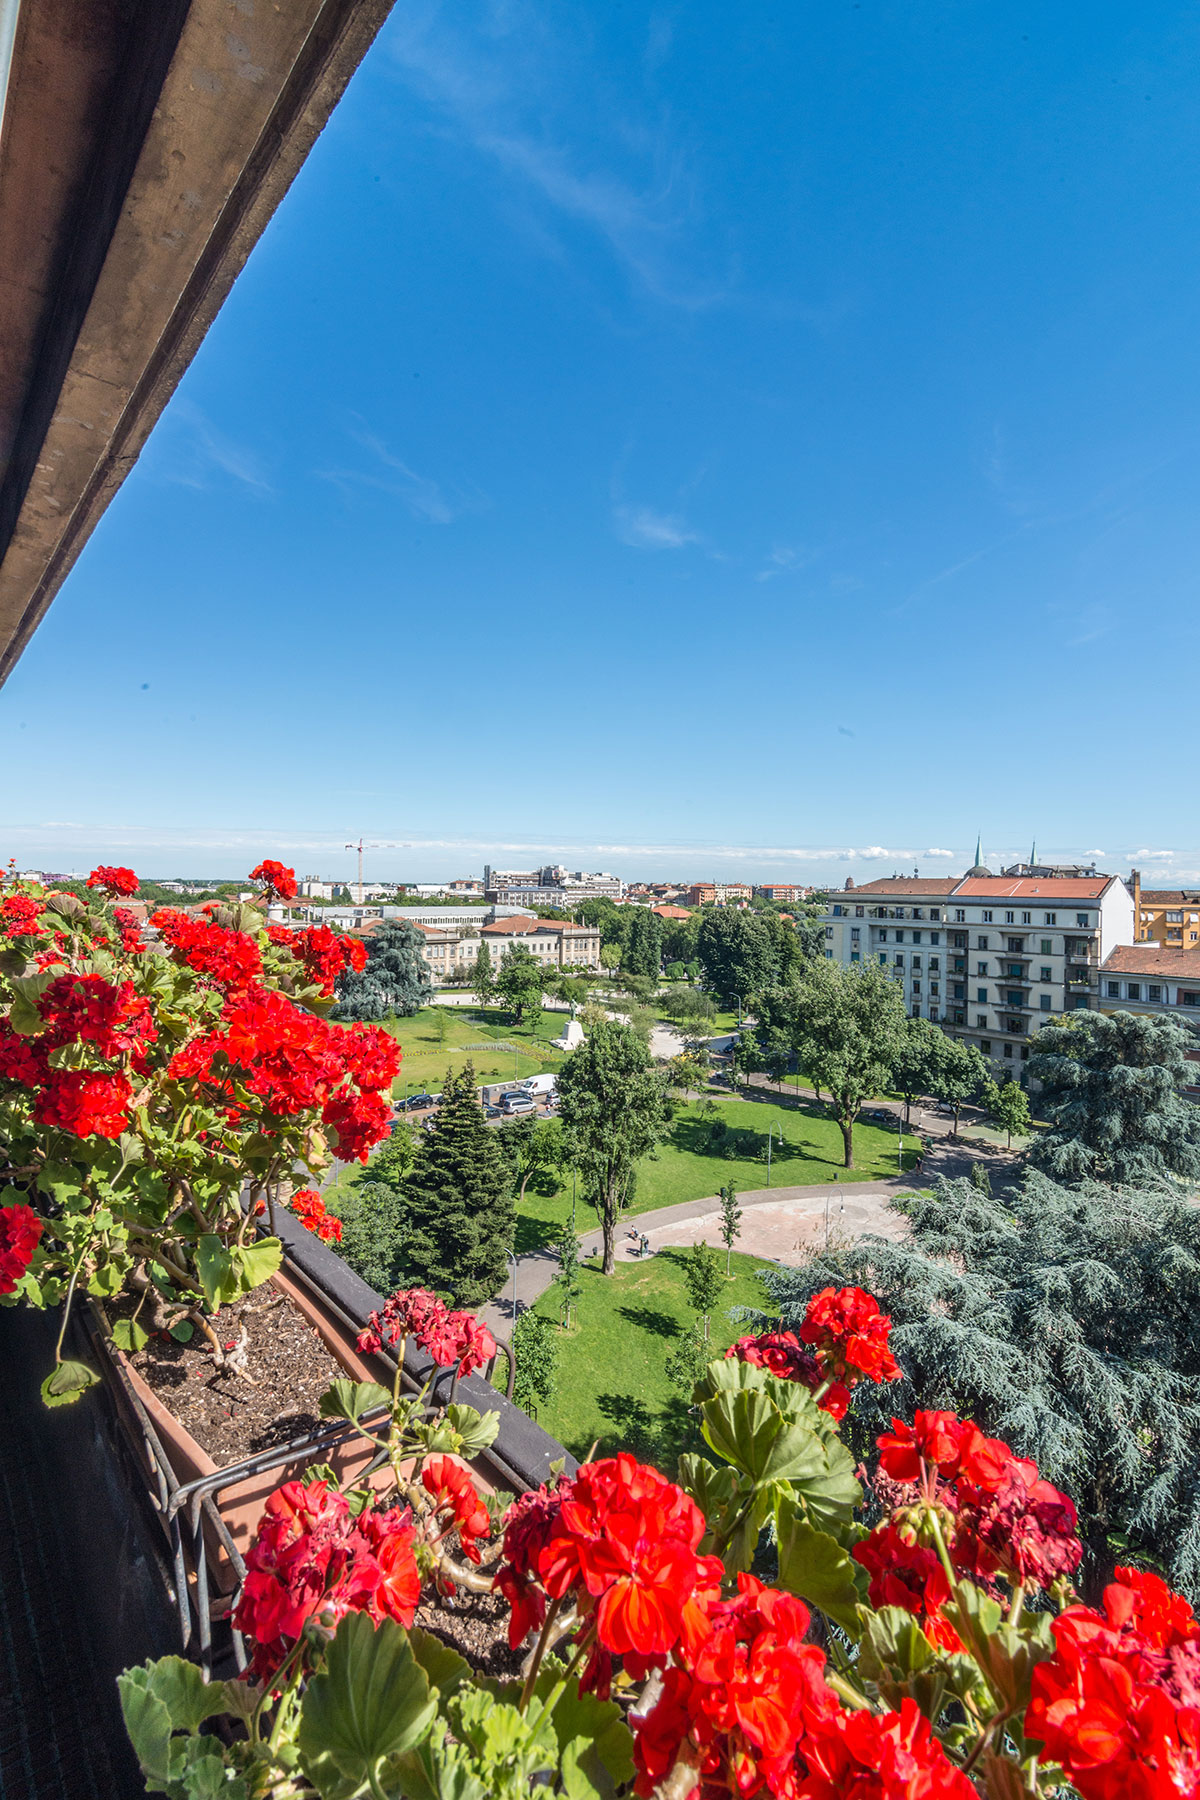 Additional photo for property listing at Exclusive penthouse in elegant building Piazza Leonardo da Vinci Milano, Milan 20133 Italien